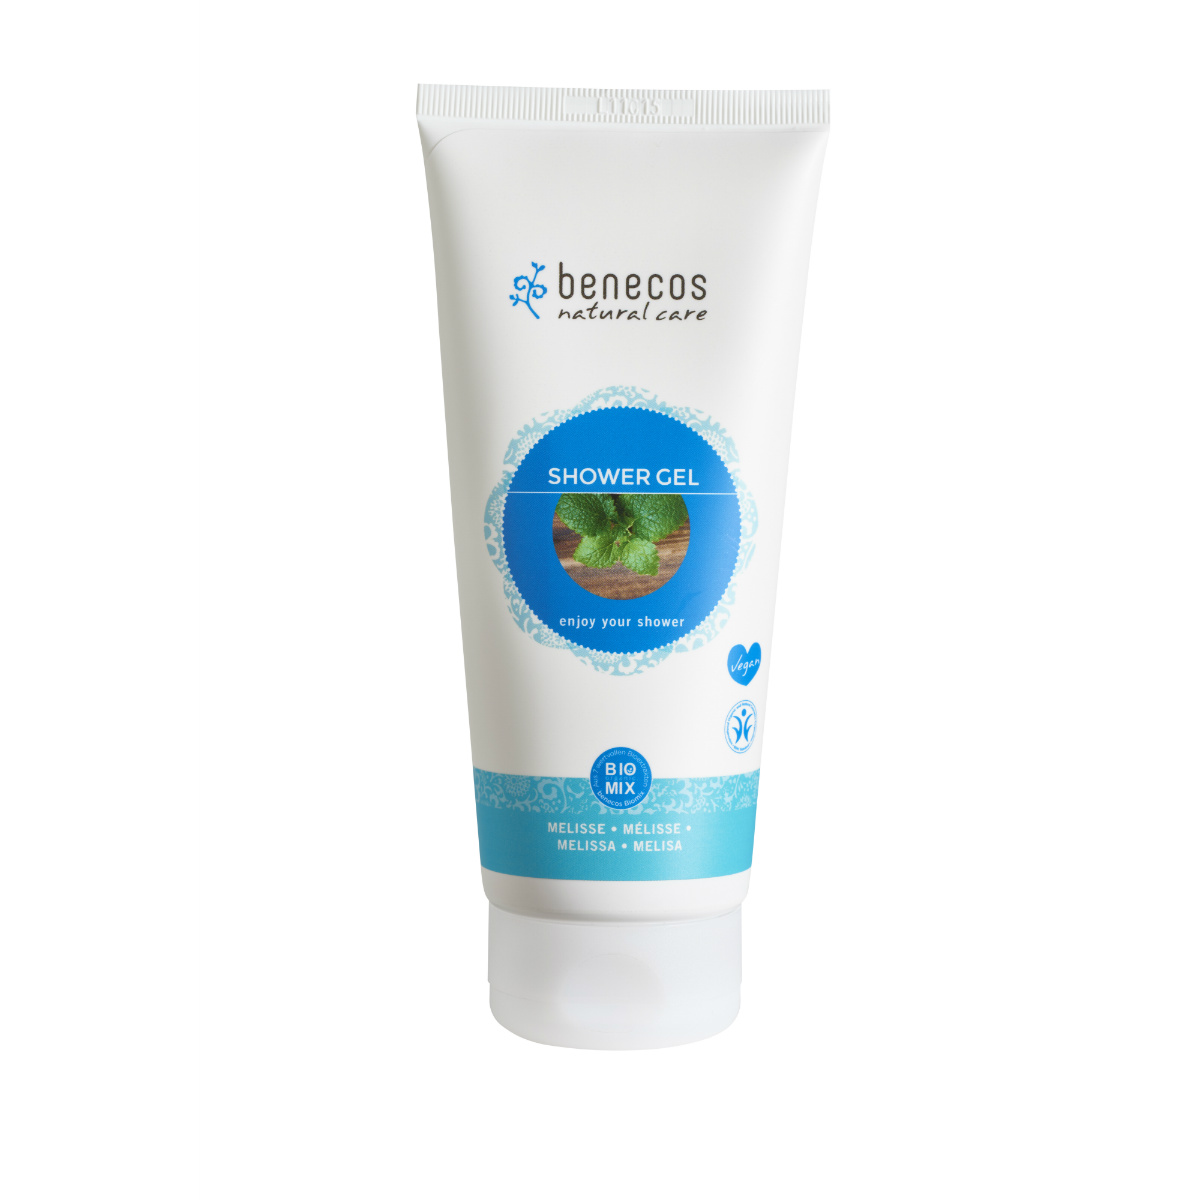 benecos Shower Gel Melisse_Melissa hr